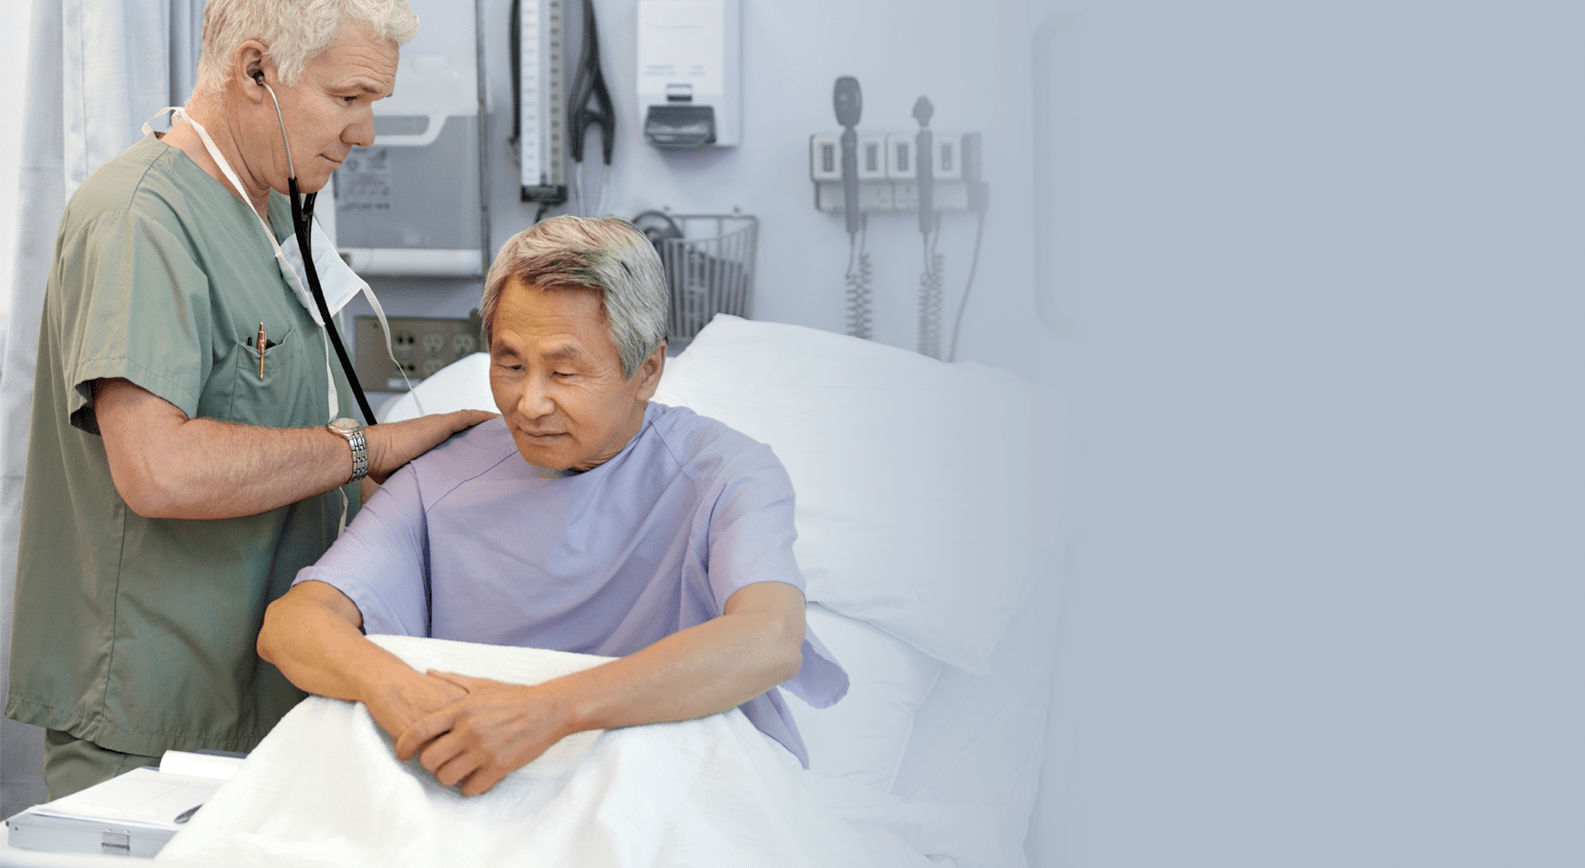 A Guideline on Postoperative Delirium in Older Adults